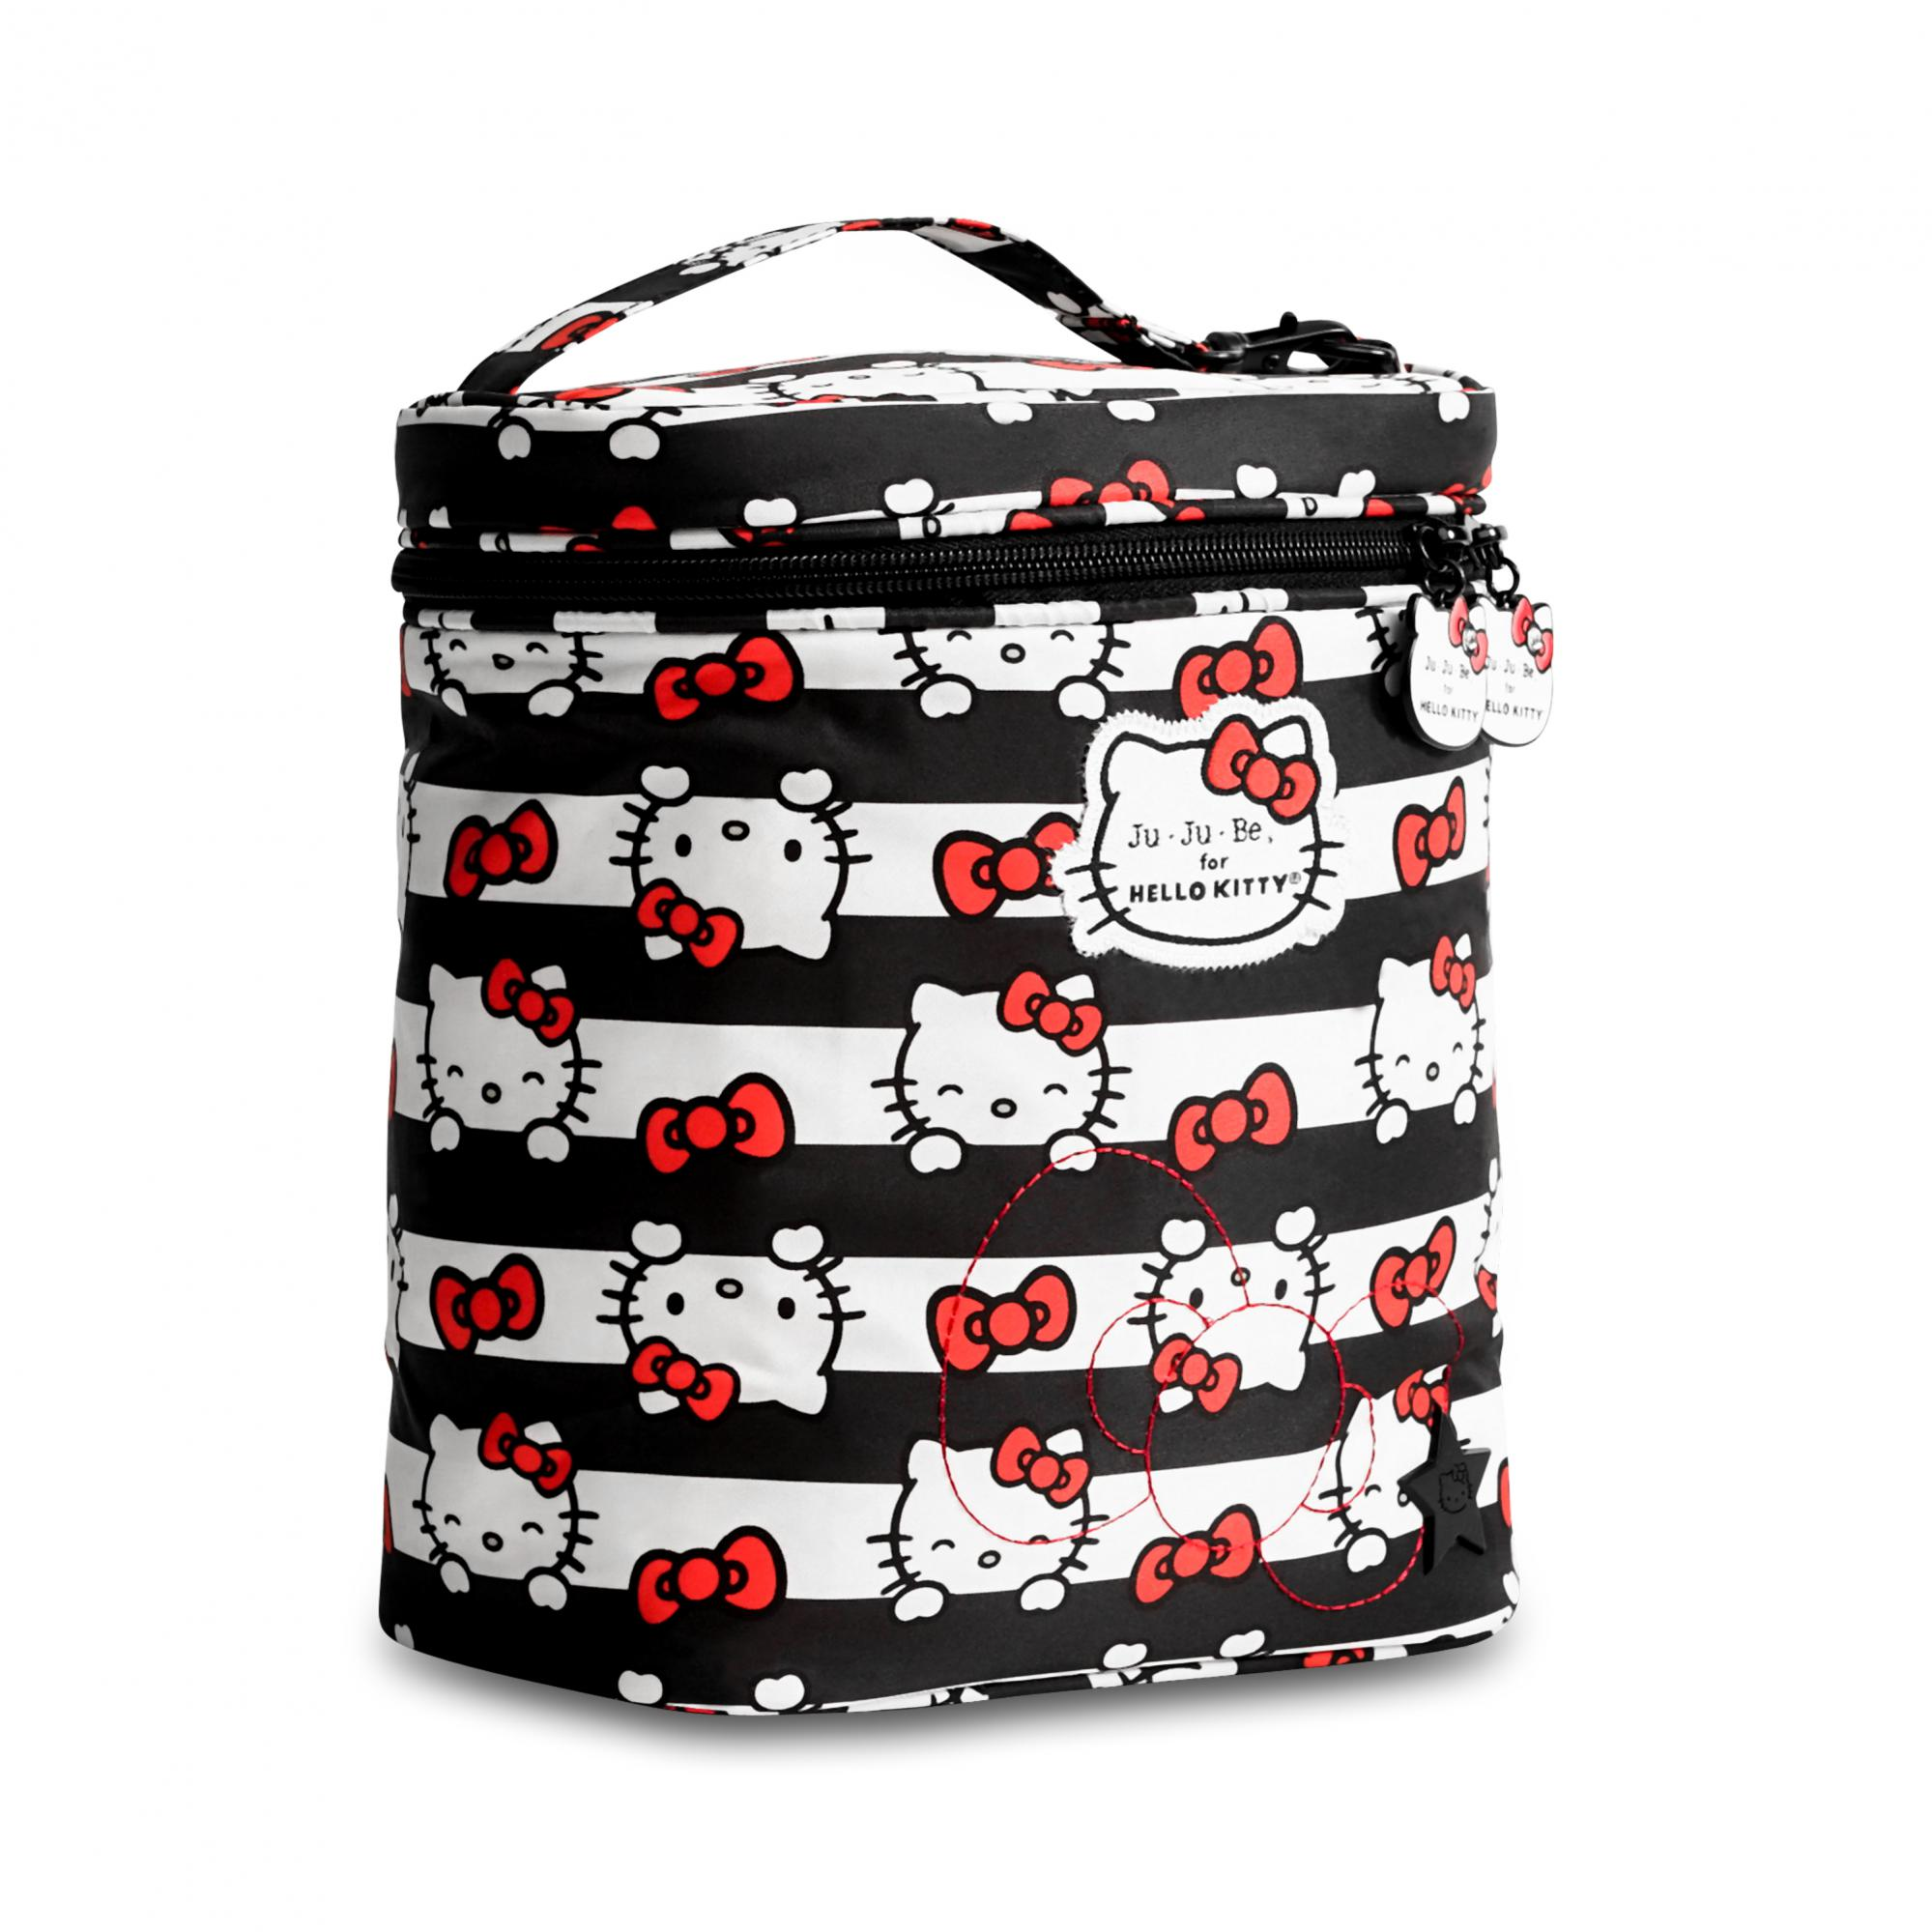 ju-ju-be-hello-kitty-dots-and-stripes-fuel-cell-2.JPG